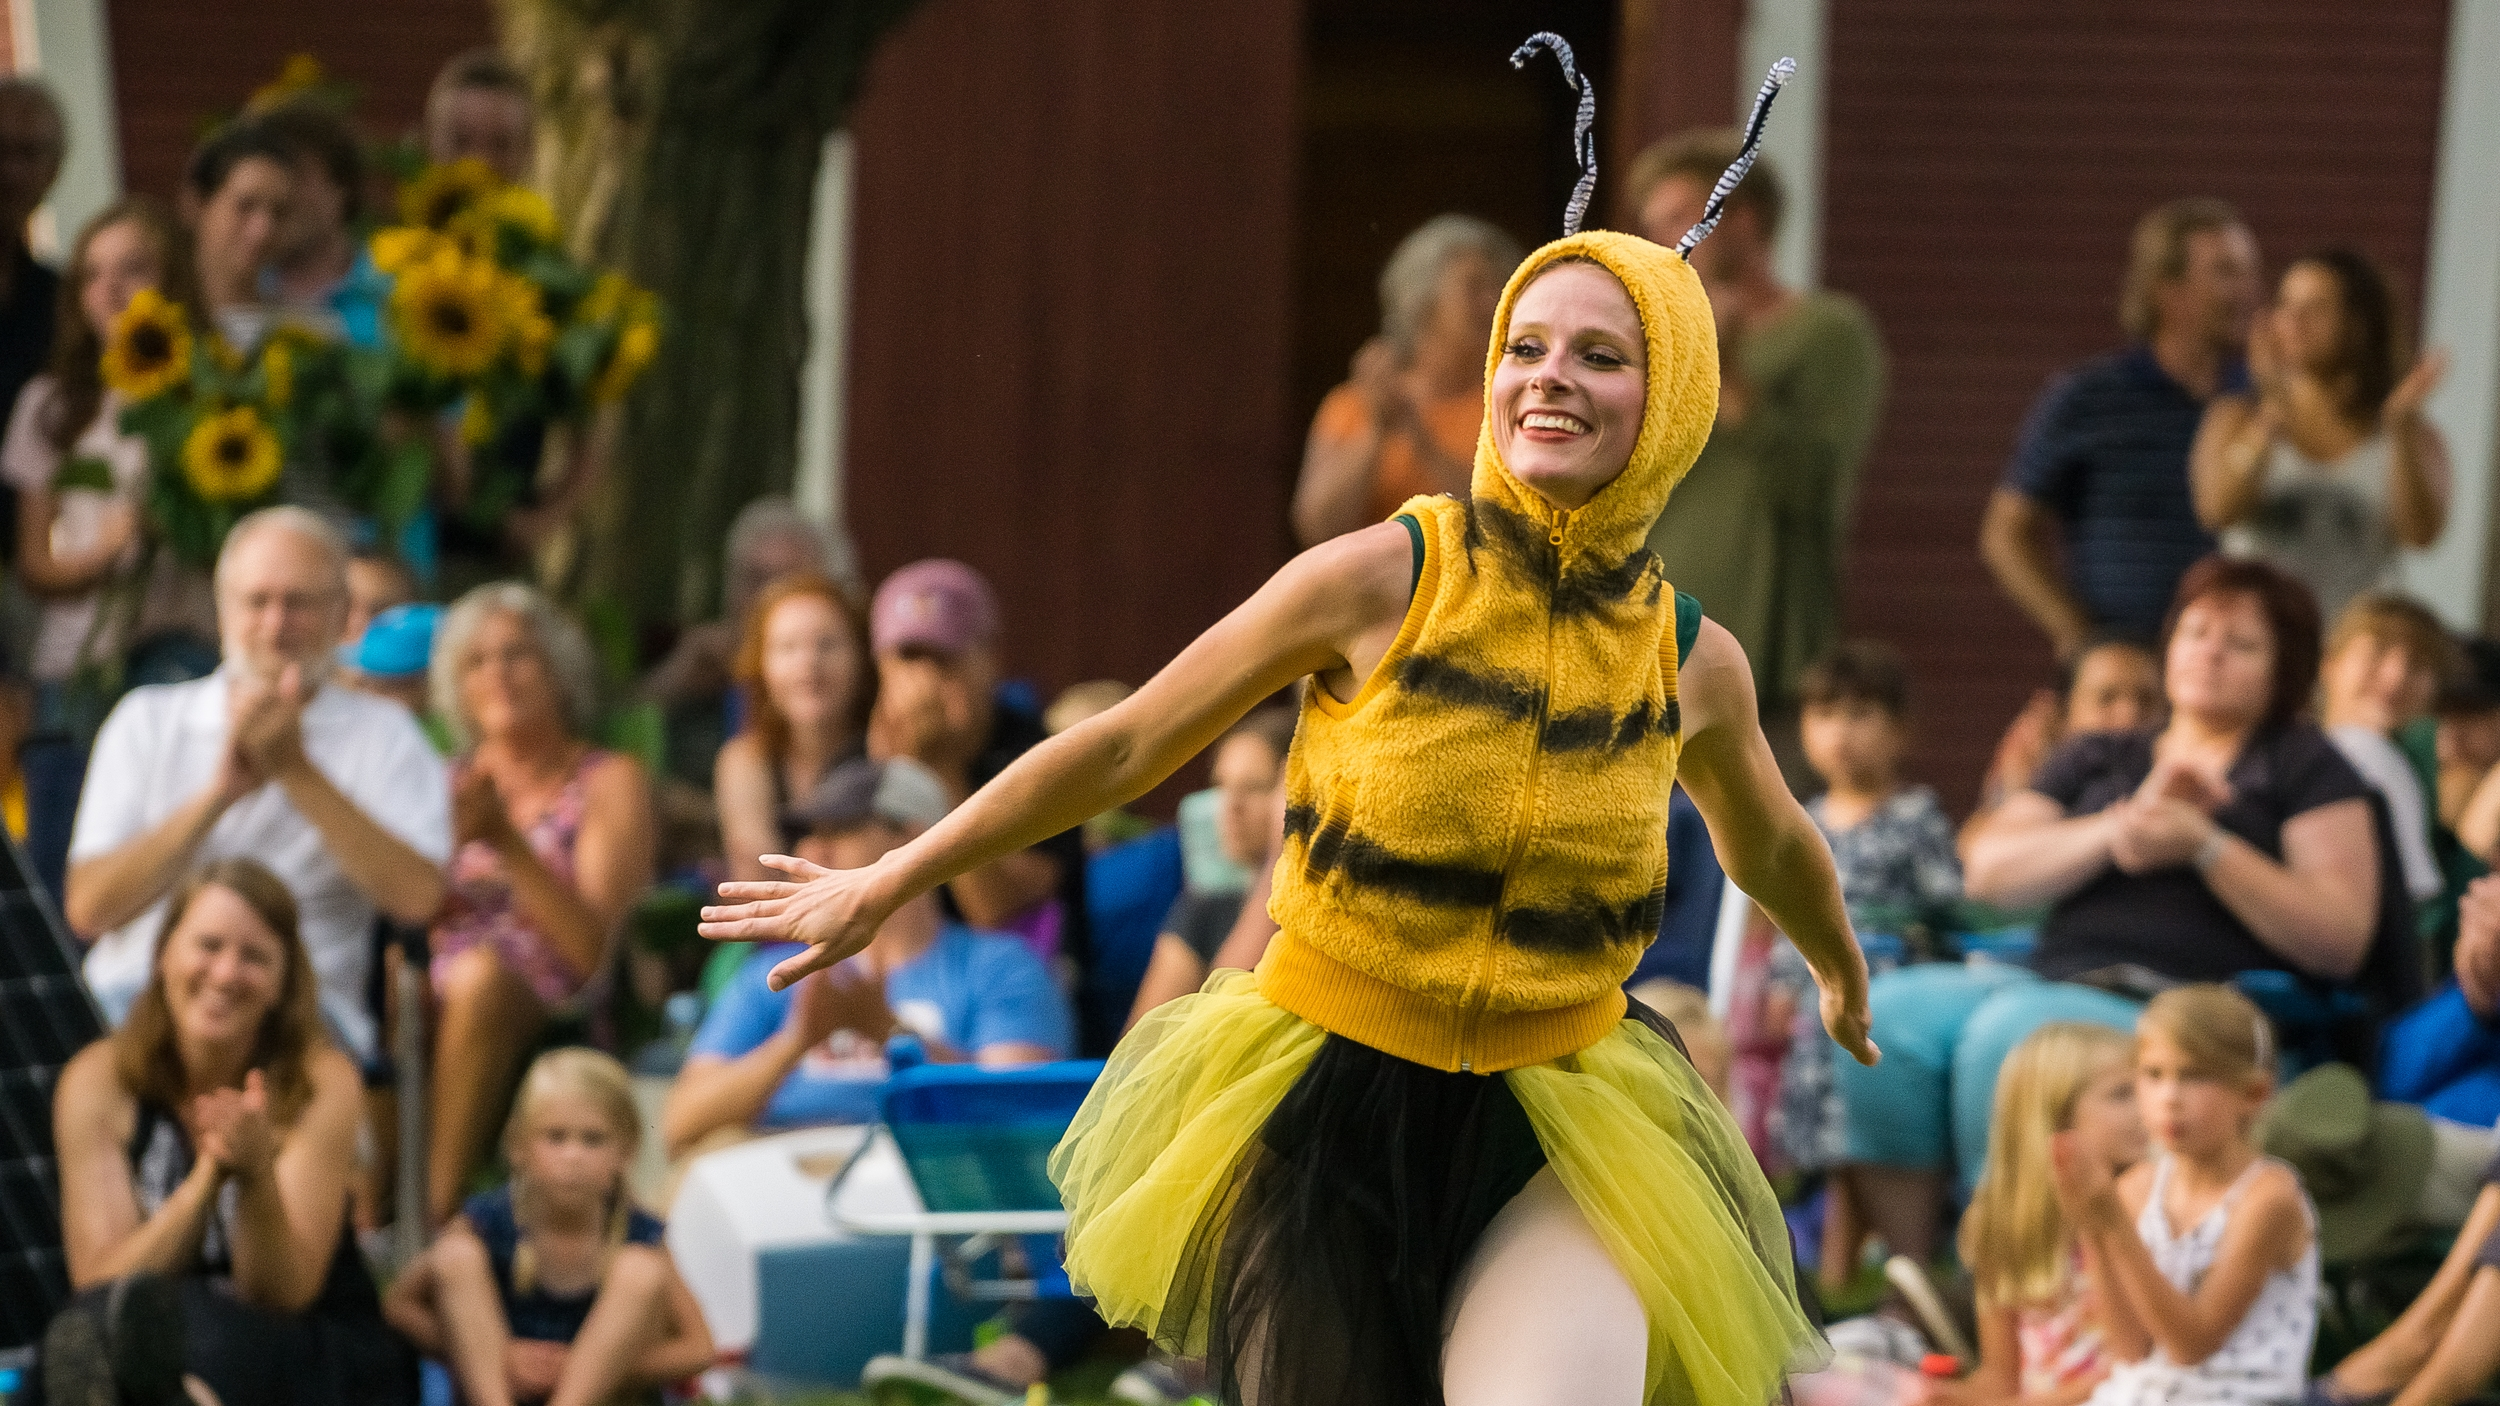 A Pollinator at the 2015 Farm to Ballet Production at Philo Ridge Farm (August 2015. Photo: Jonas Powell)